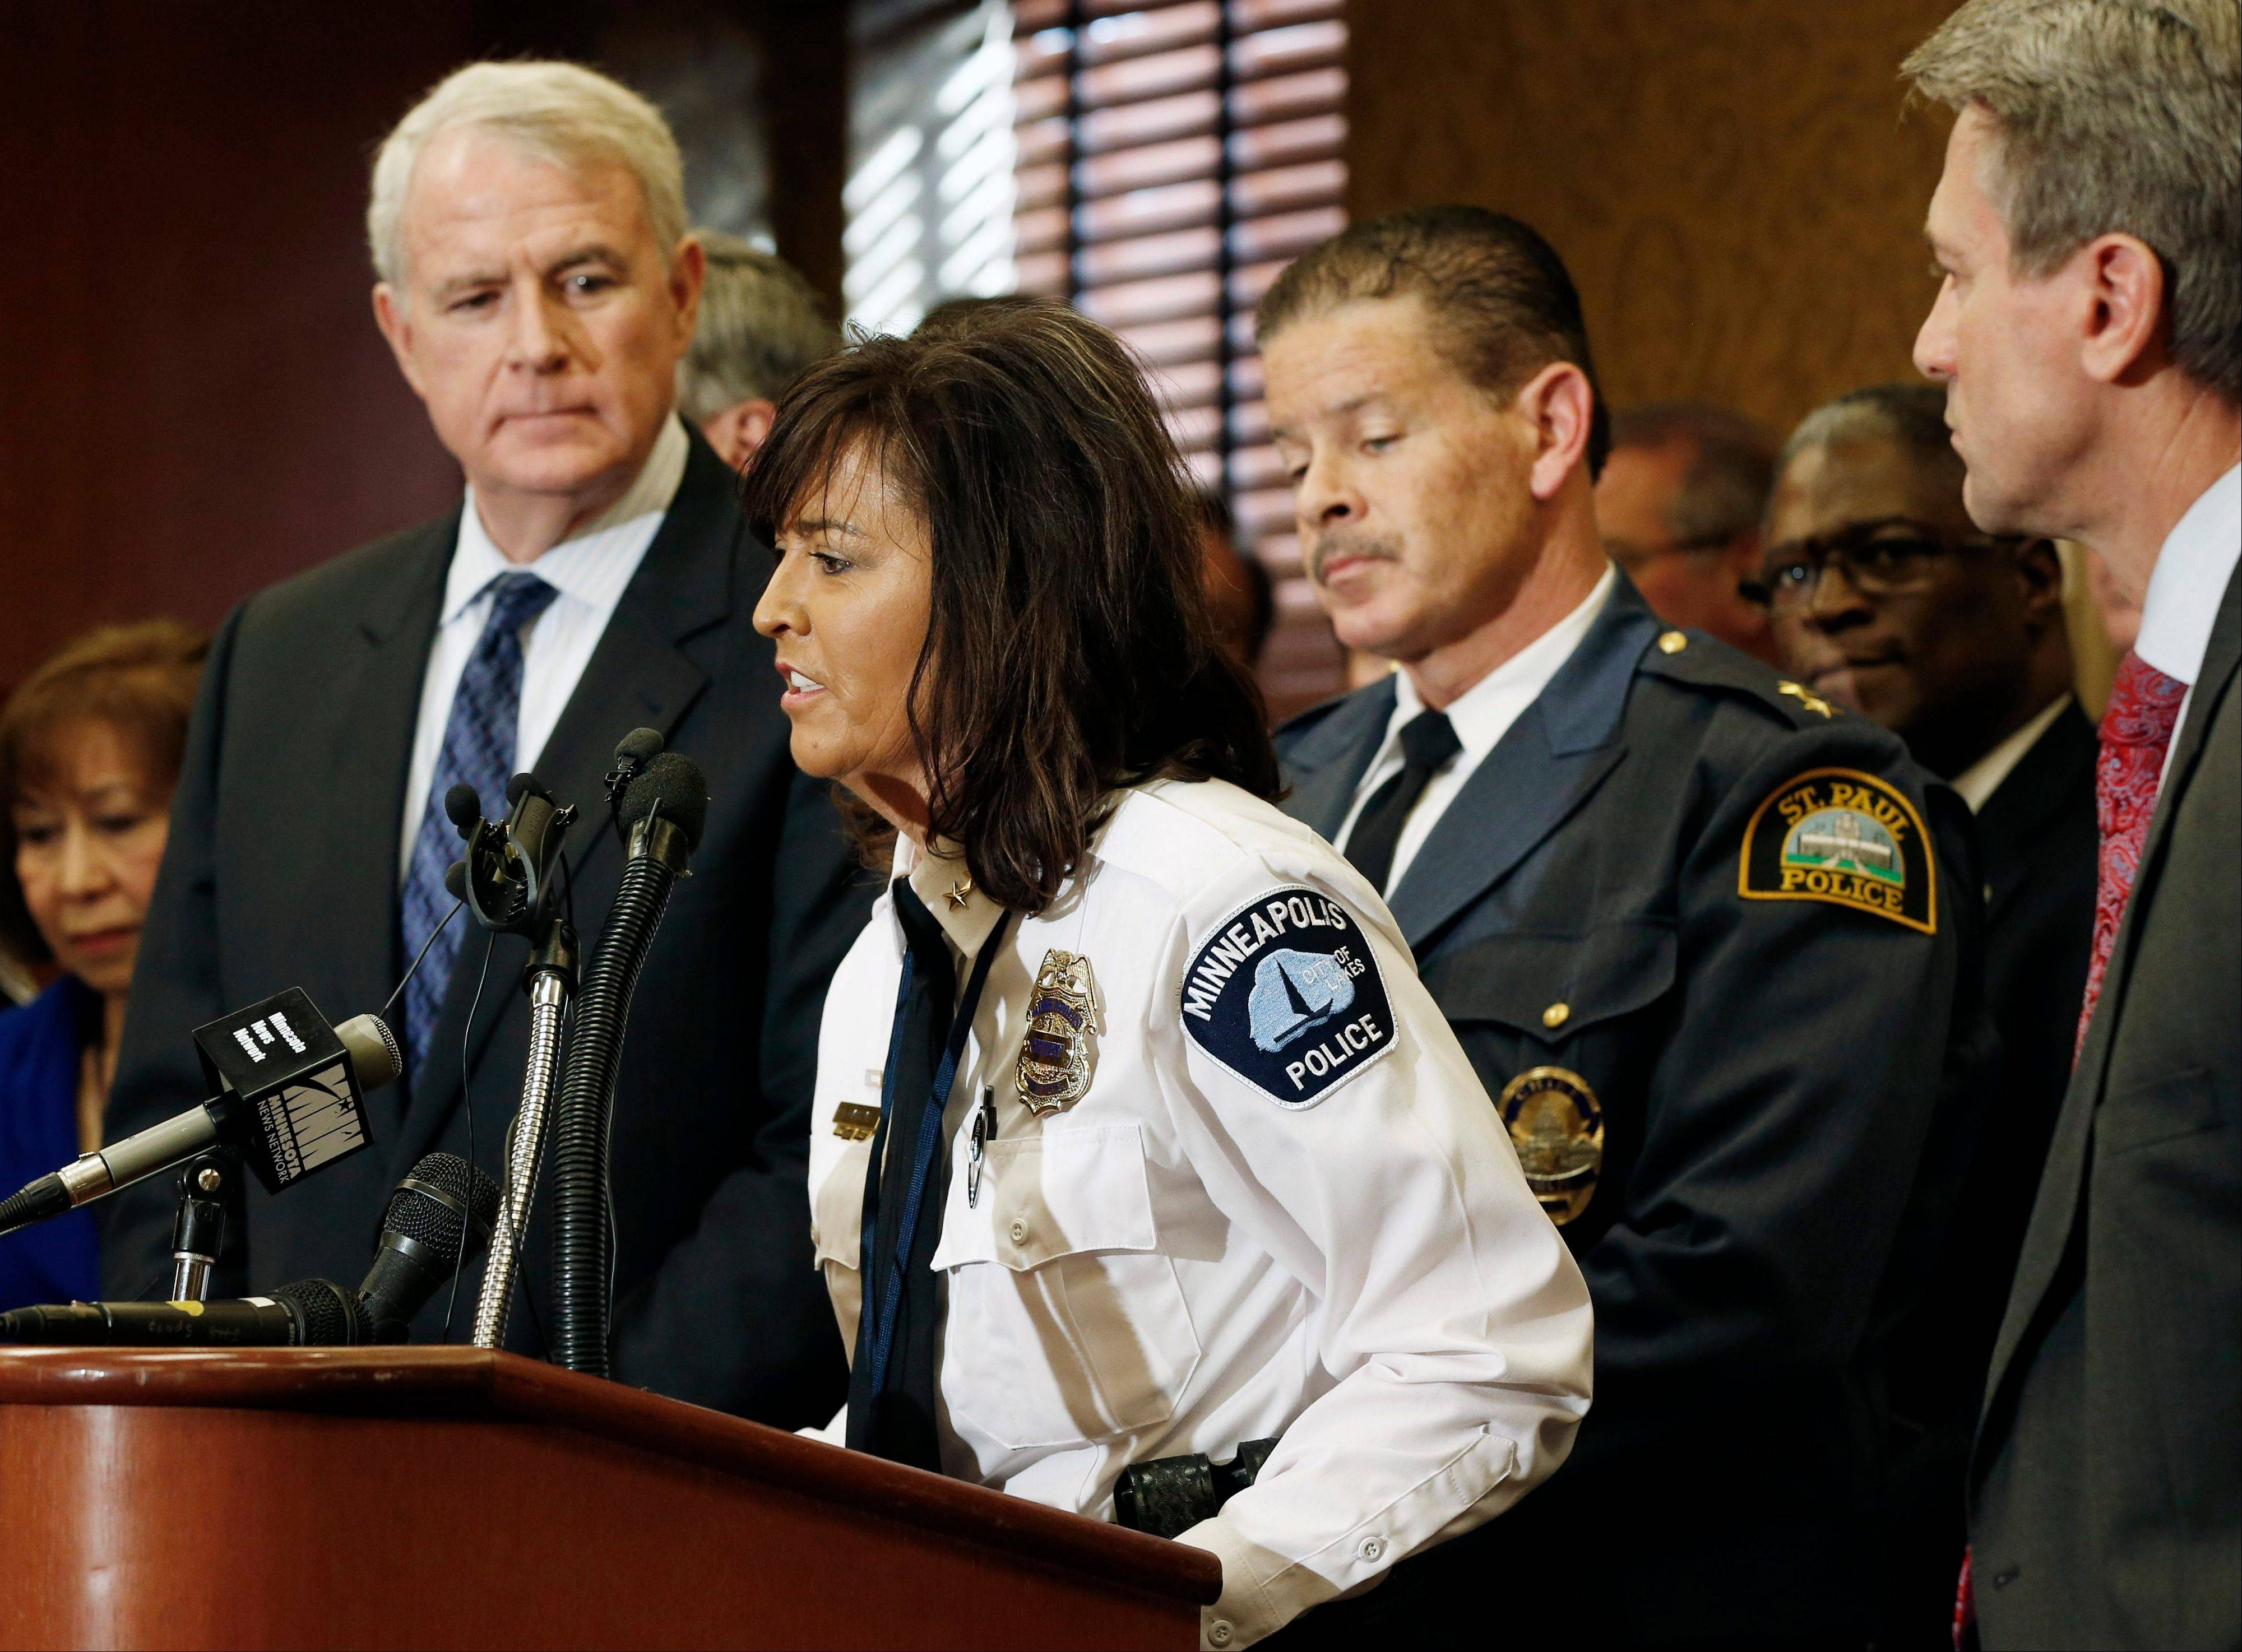 Minneapolis Police Chief Renee Harteau addresses a Regional Gun Summit news conference hosted by Minneapolis Major R.T. Rybak, right, and Milwaukee Mayor Tom Barrett, left, Thursday in Minneapolis.